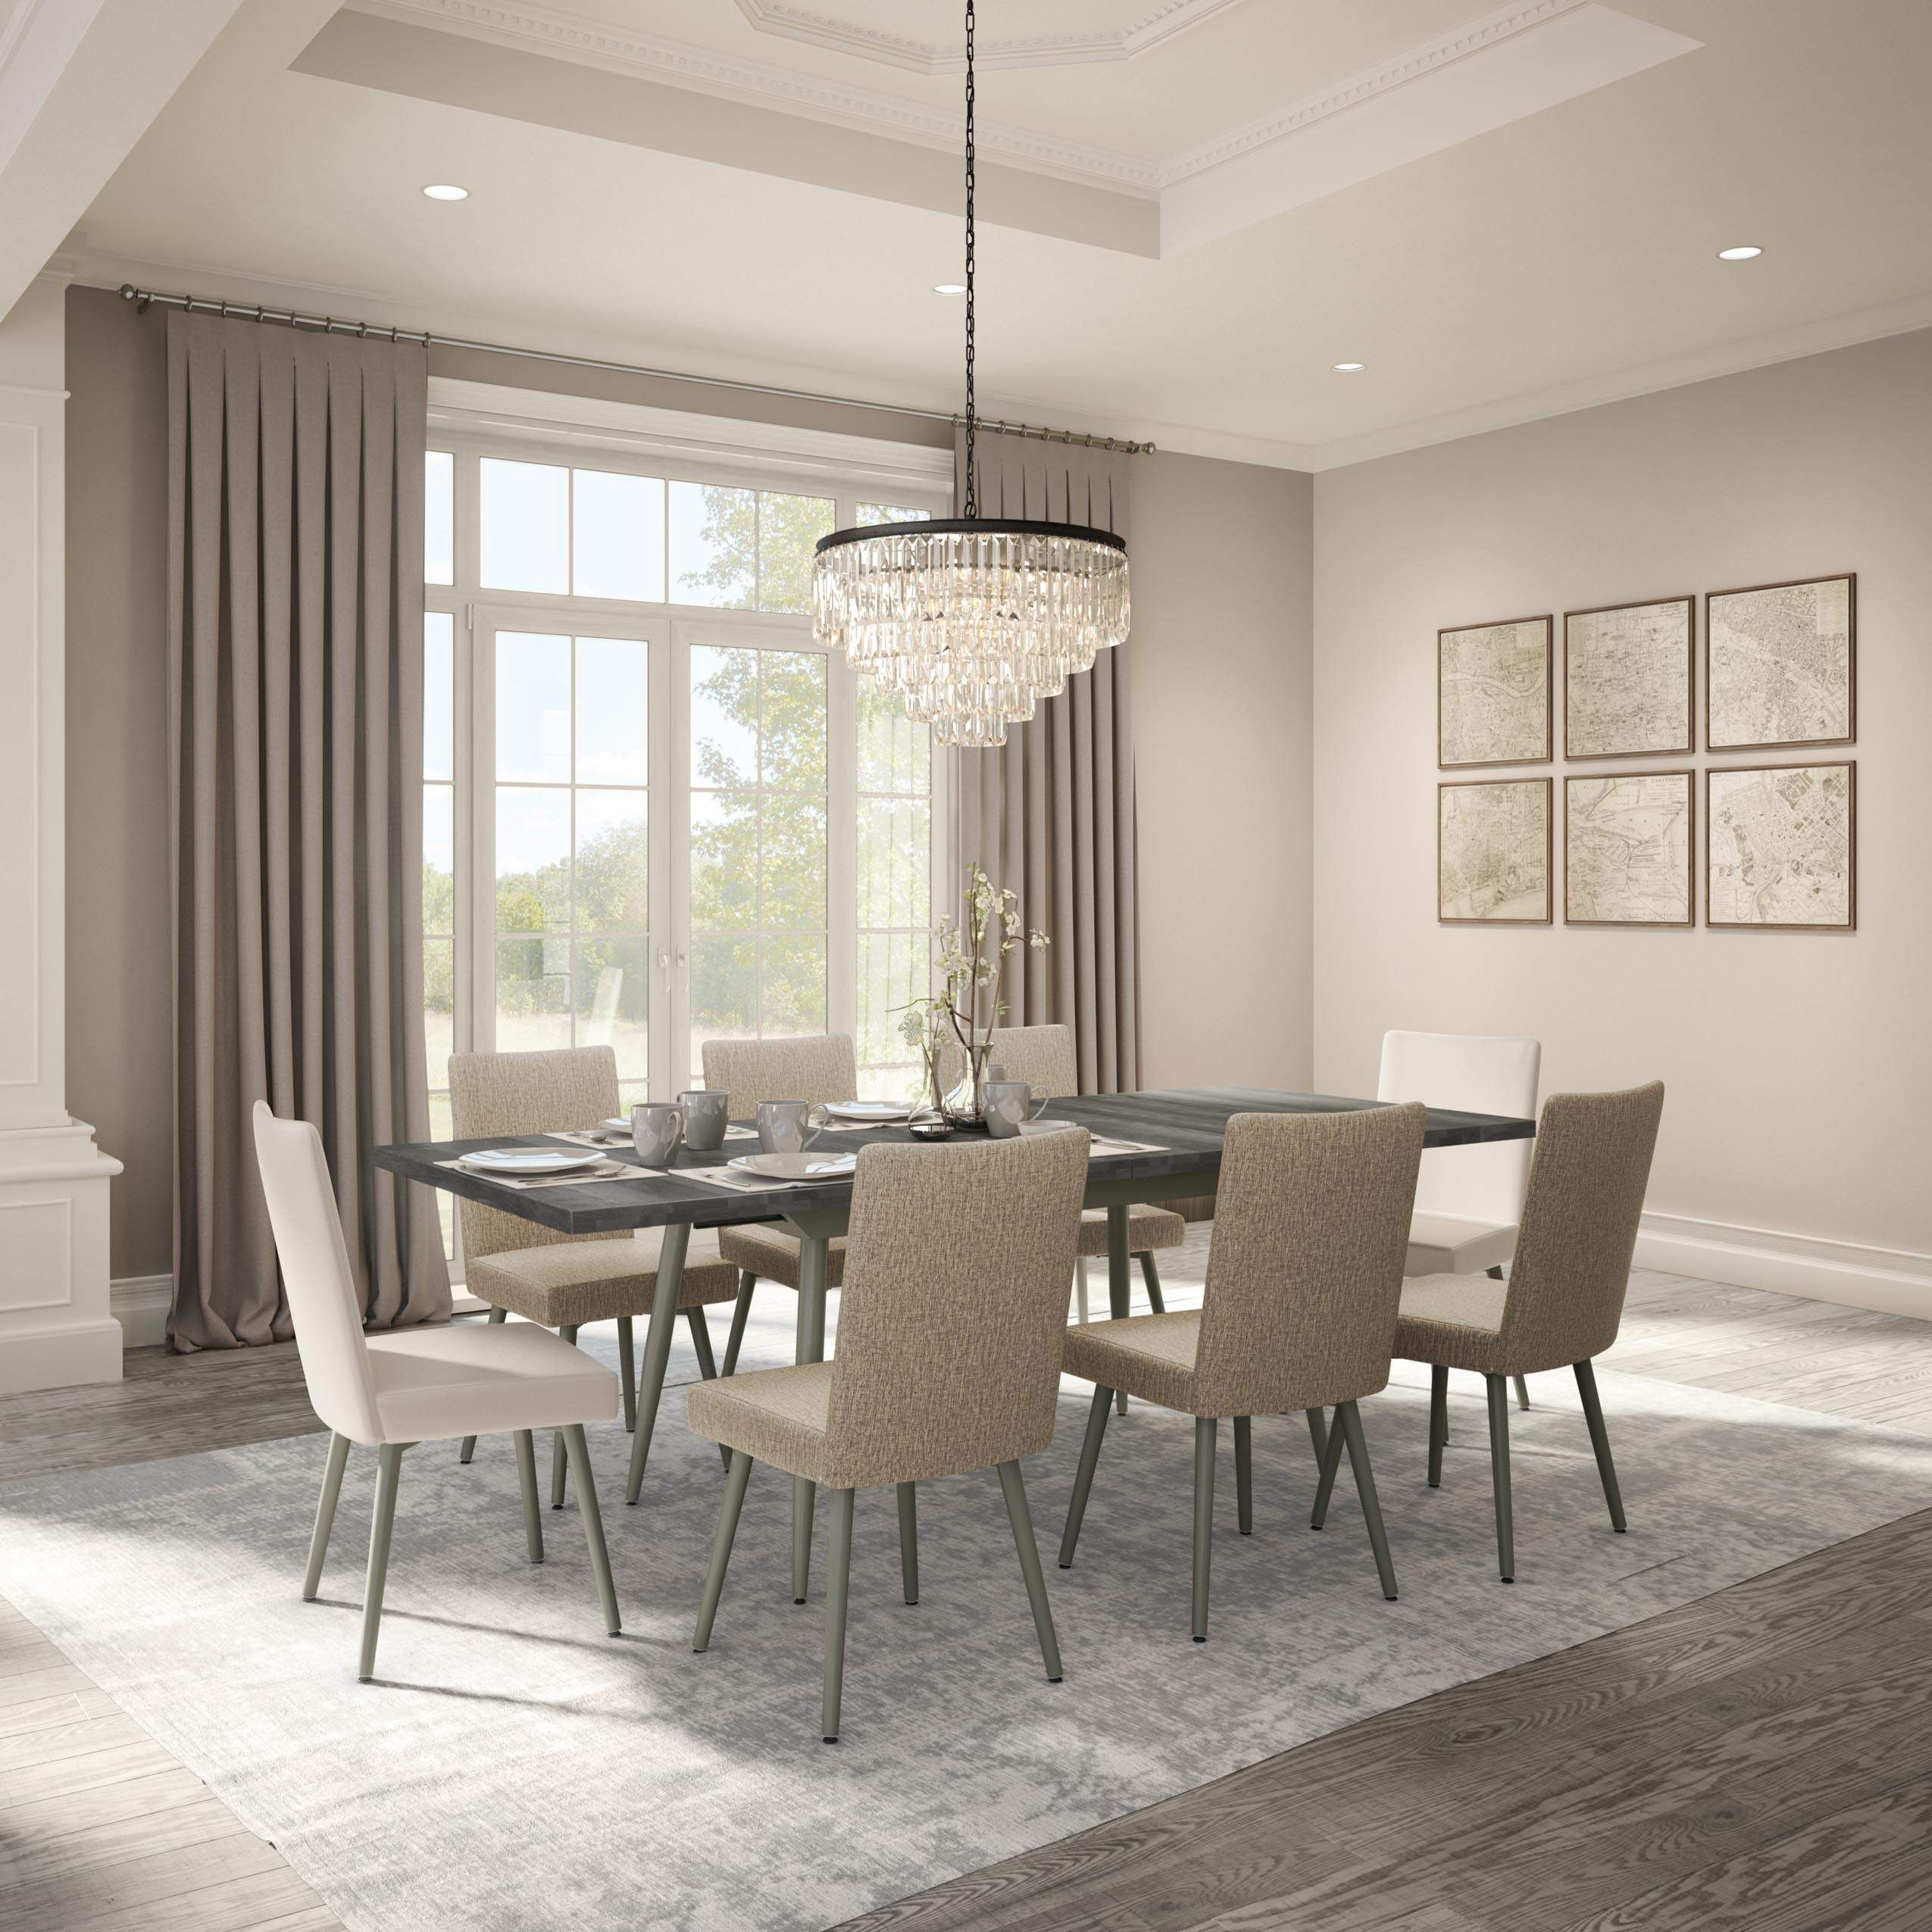 Webber Luxury Dining Room Furniture Tables Chairs In Long Island